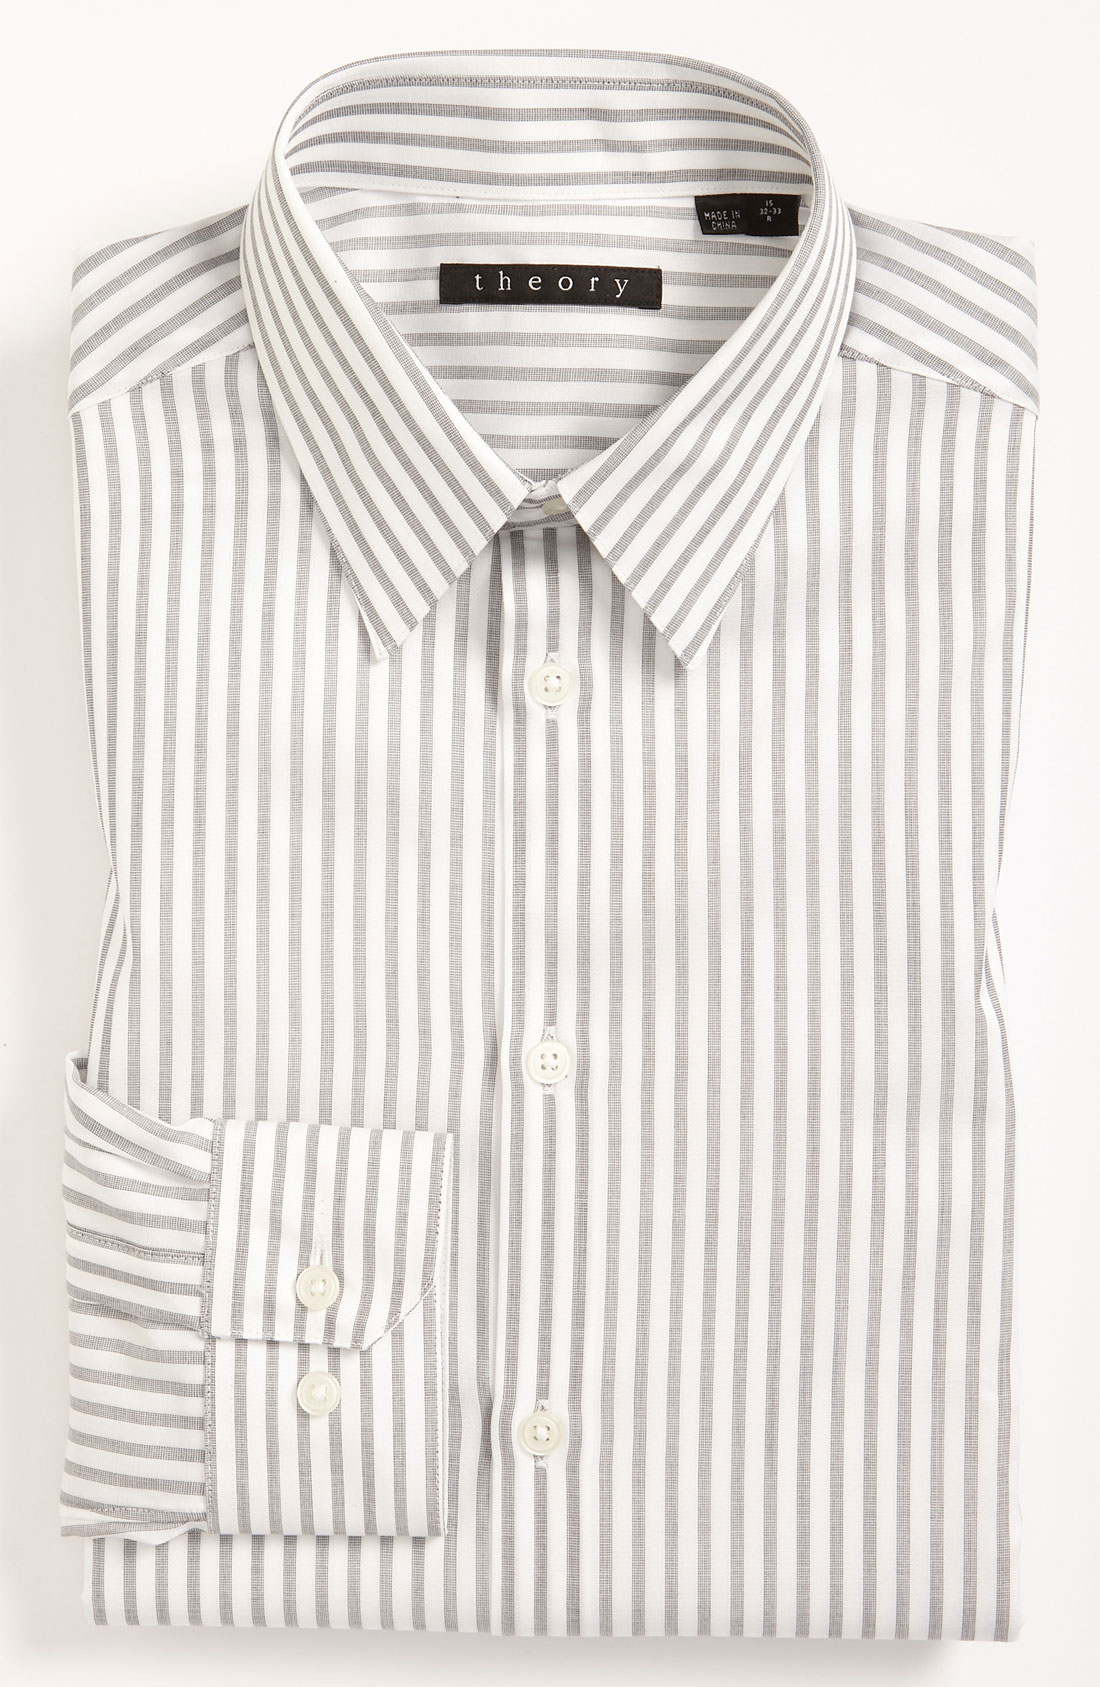 Theory extra trim fit dress shirt in gray for men white for Extra trim fit dress shirt